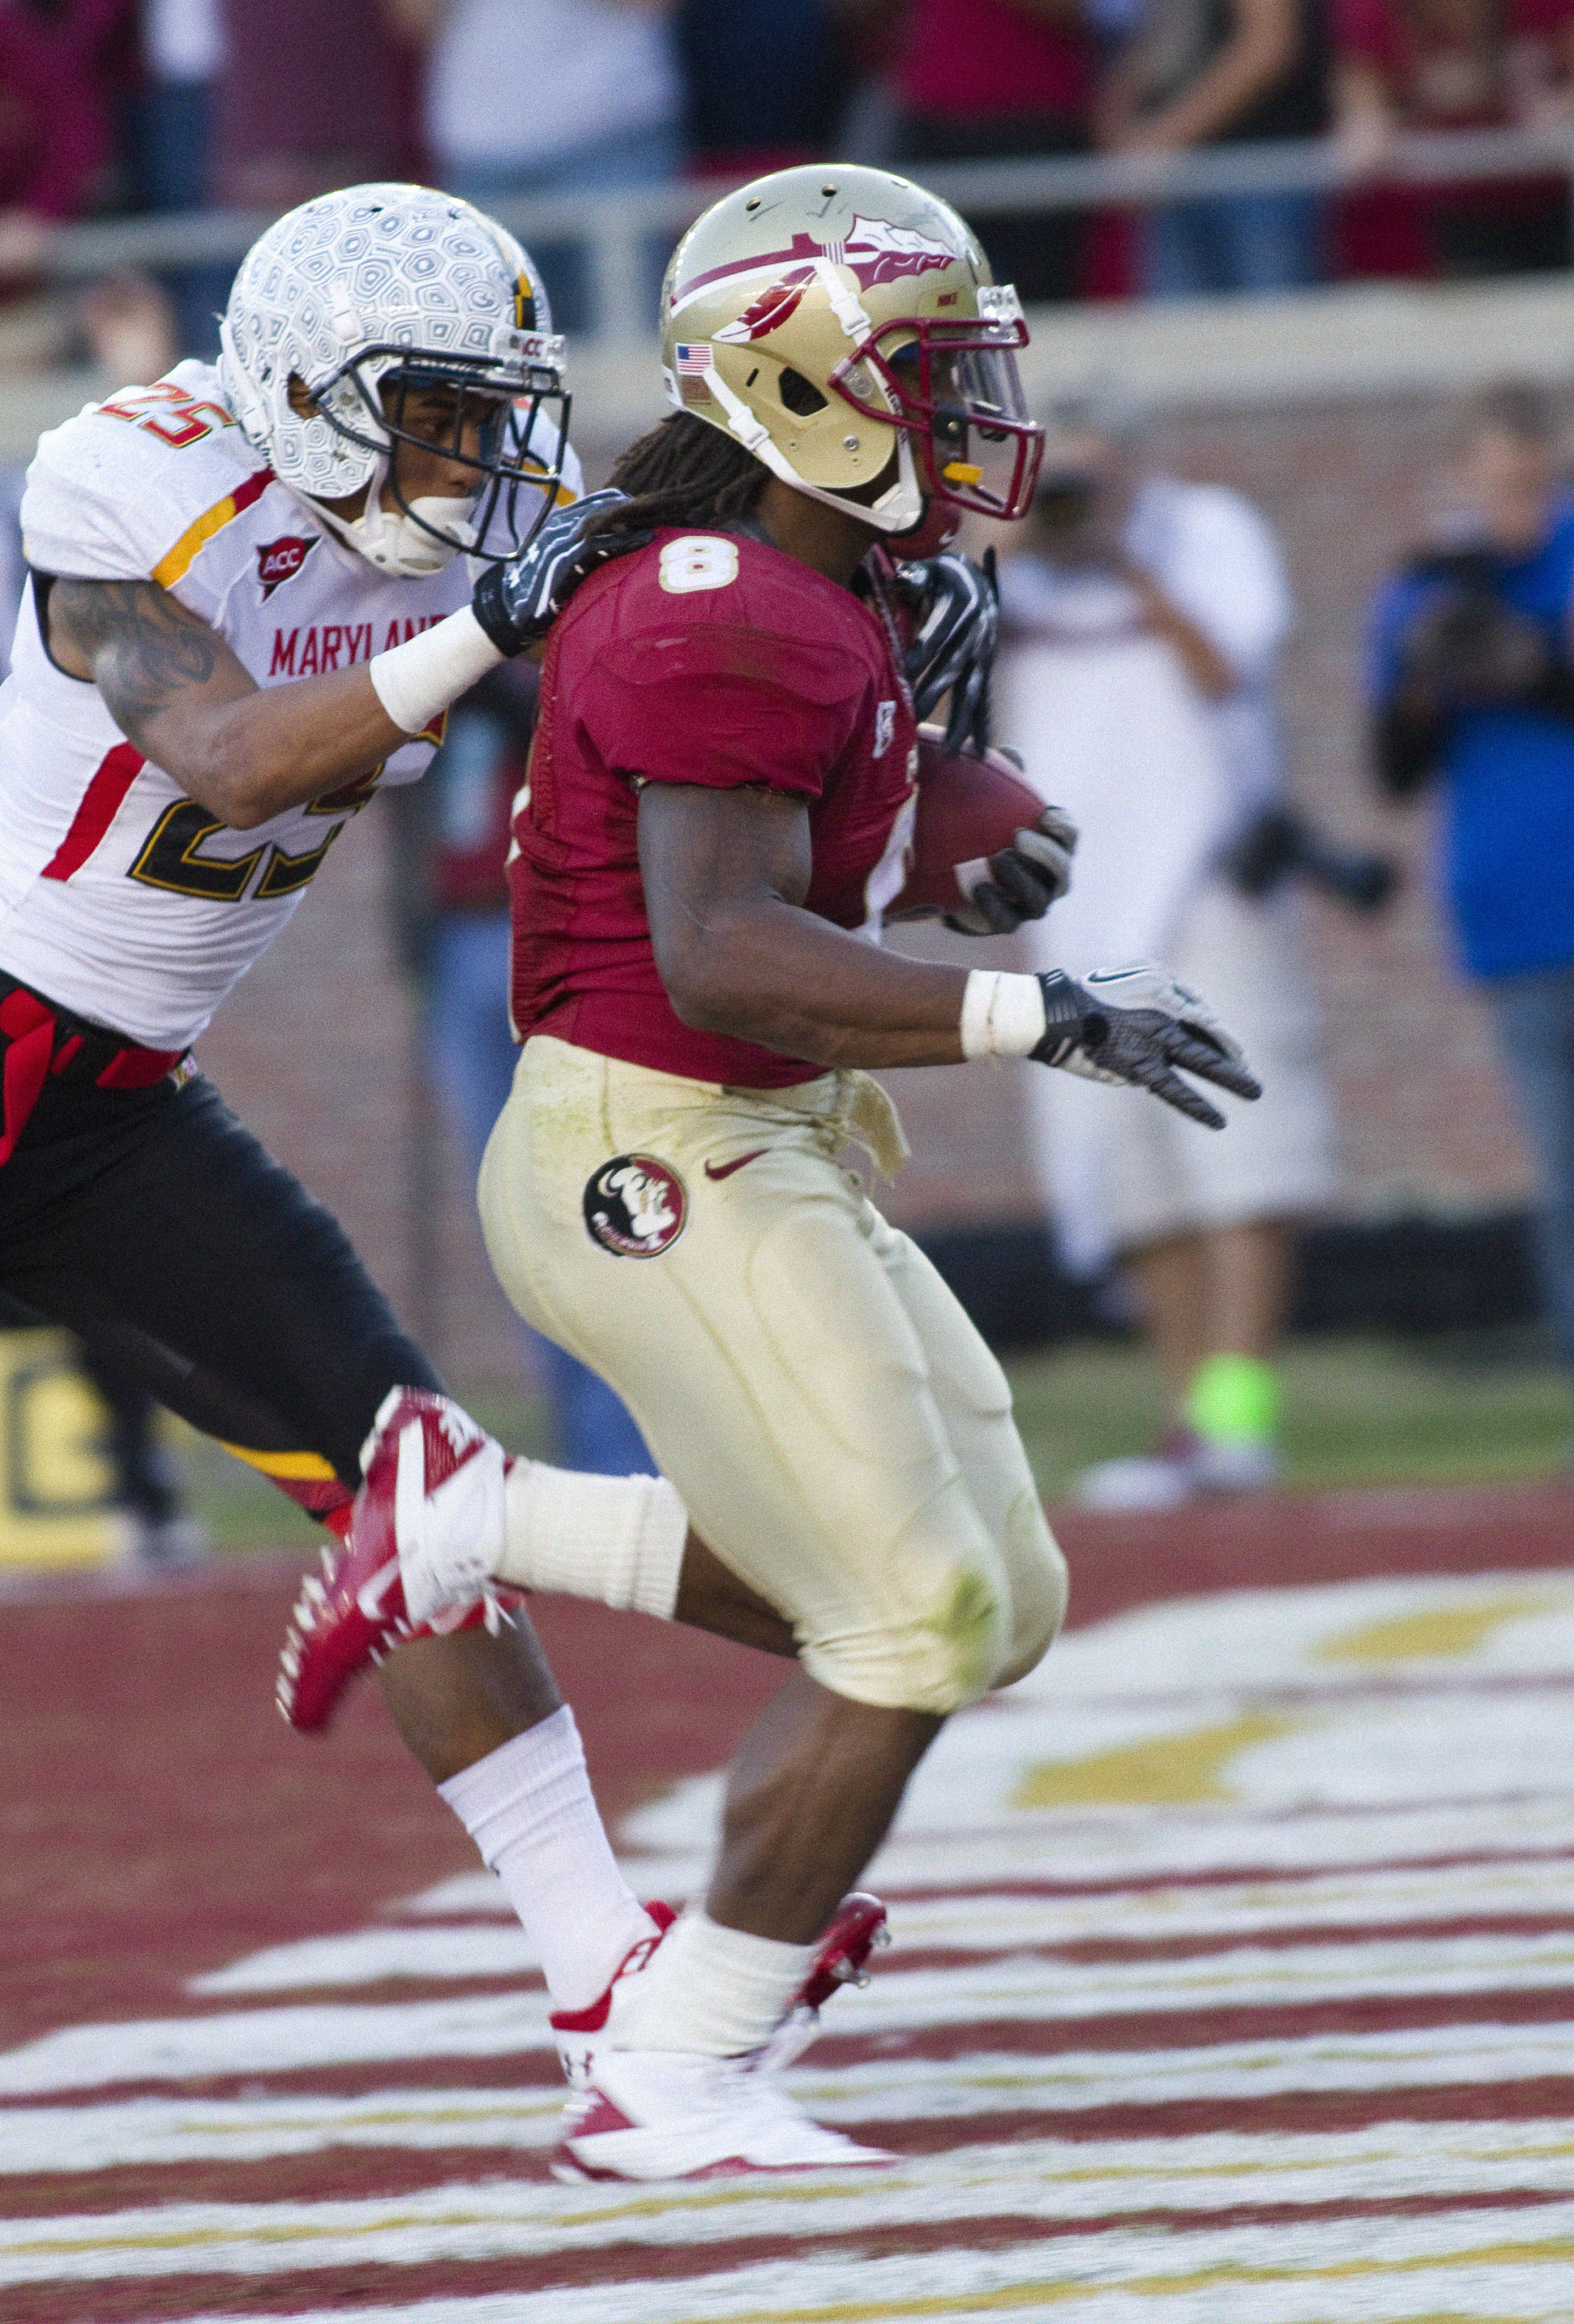 Devonta Freeman (8) finishing a 41 yard touchdown run. FSU vs Maryland 10/22/1111